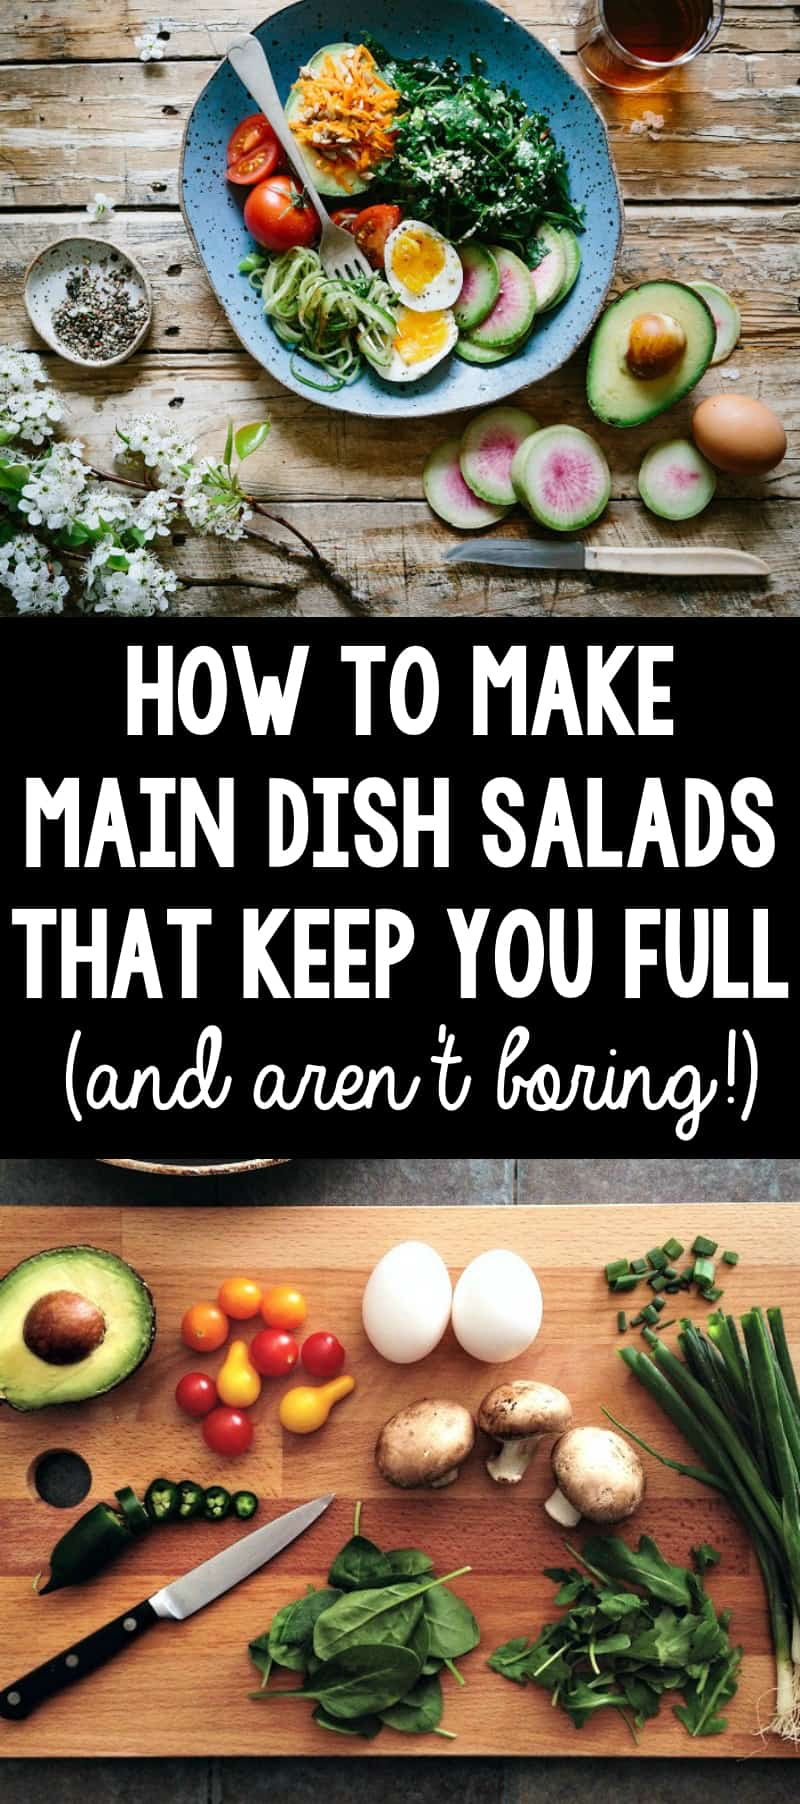 Main dish salads sound boring and unsatisfying? Try this formula for main dish salad success. Your belly, health, and taste buds will all thank you.